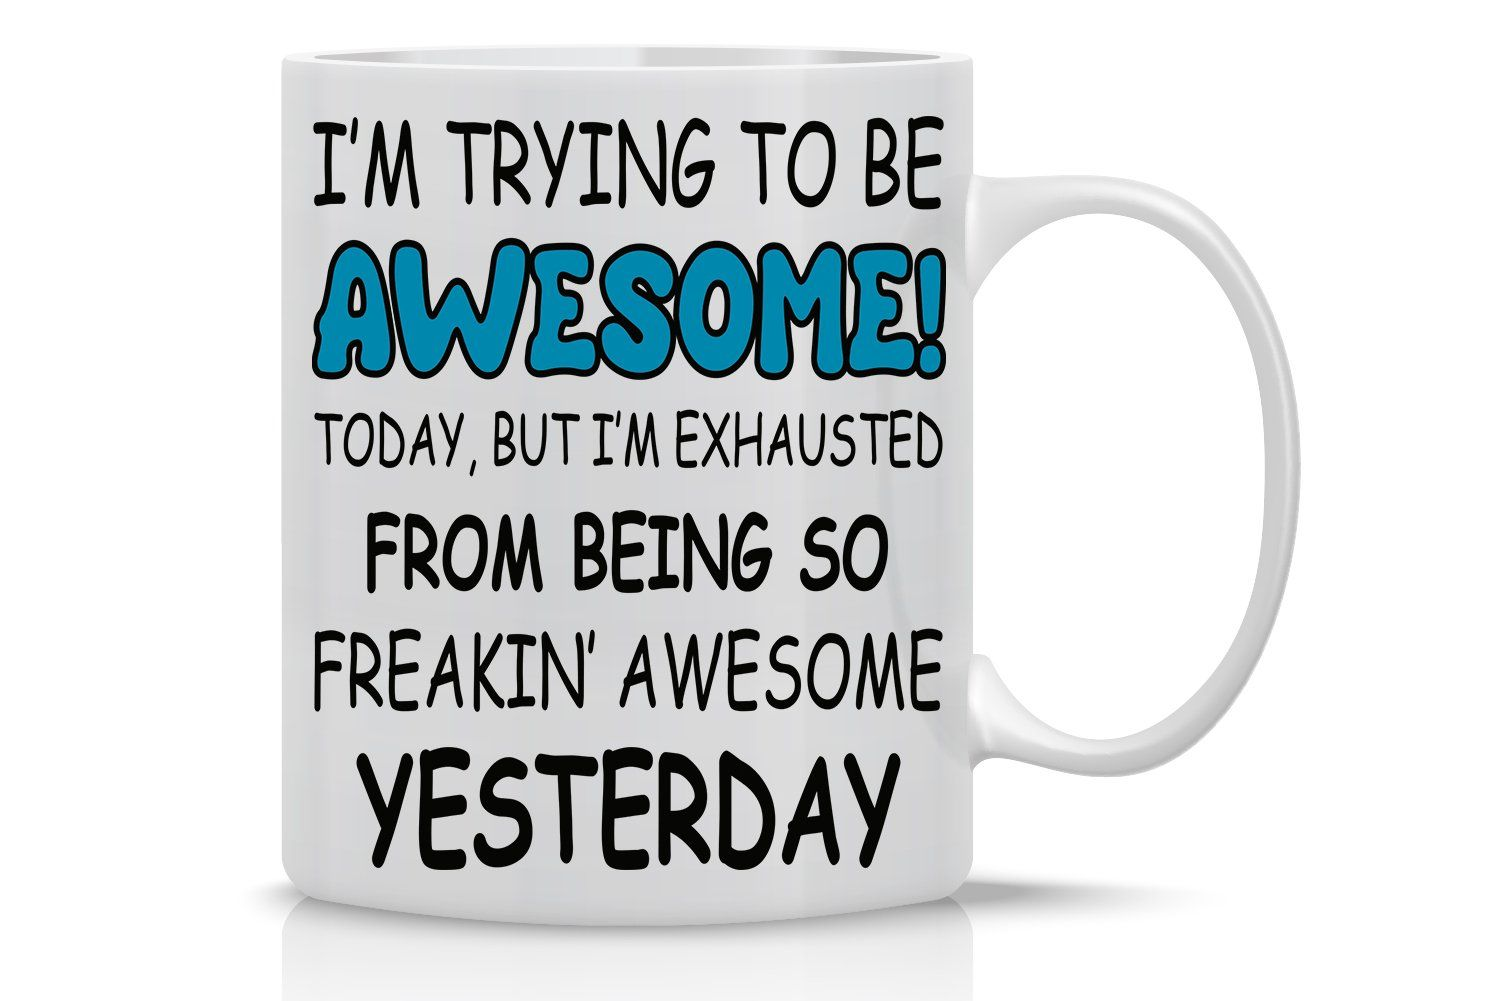 Im Trying To Be Awesome Today But Im Exhausted From Being So Freakin Awesome Yesterday 11oz Coffee Mug Funny And Inspiratio Mugs Worlds Best Boss Coffee Mugs